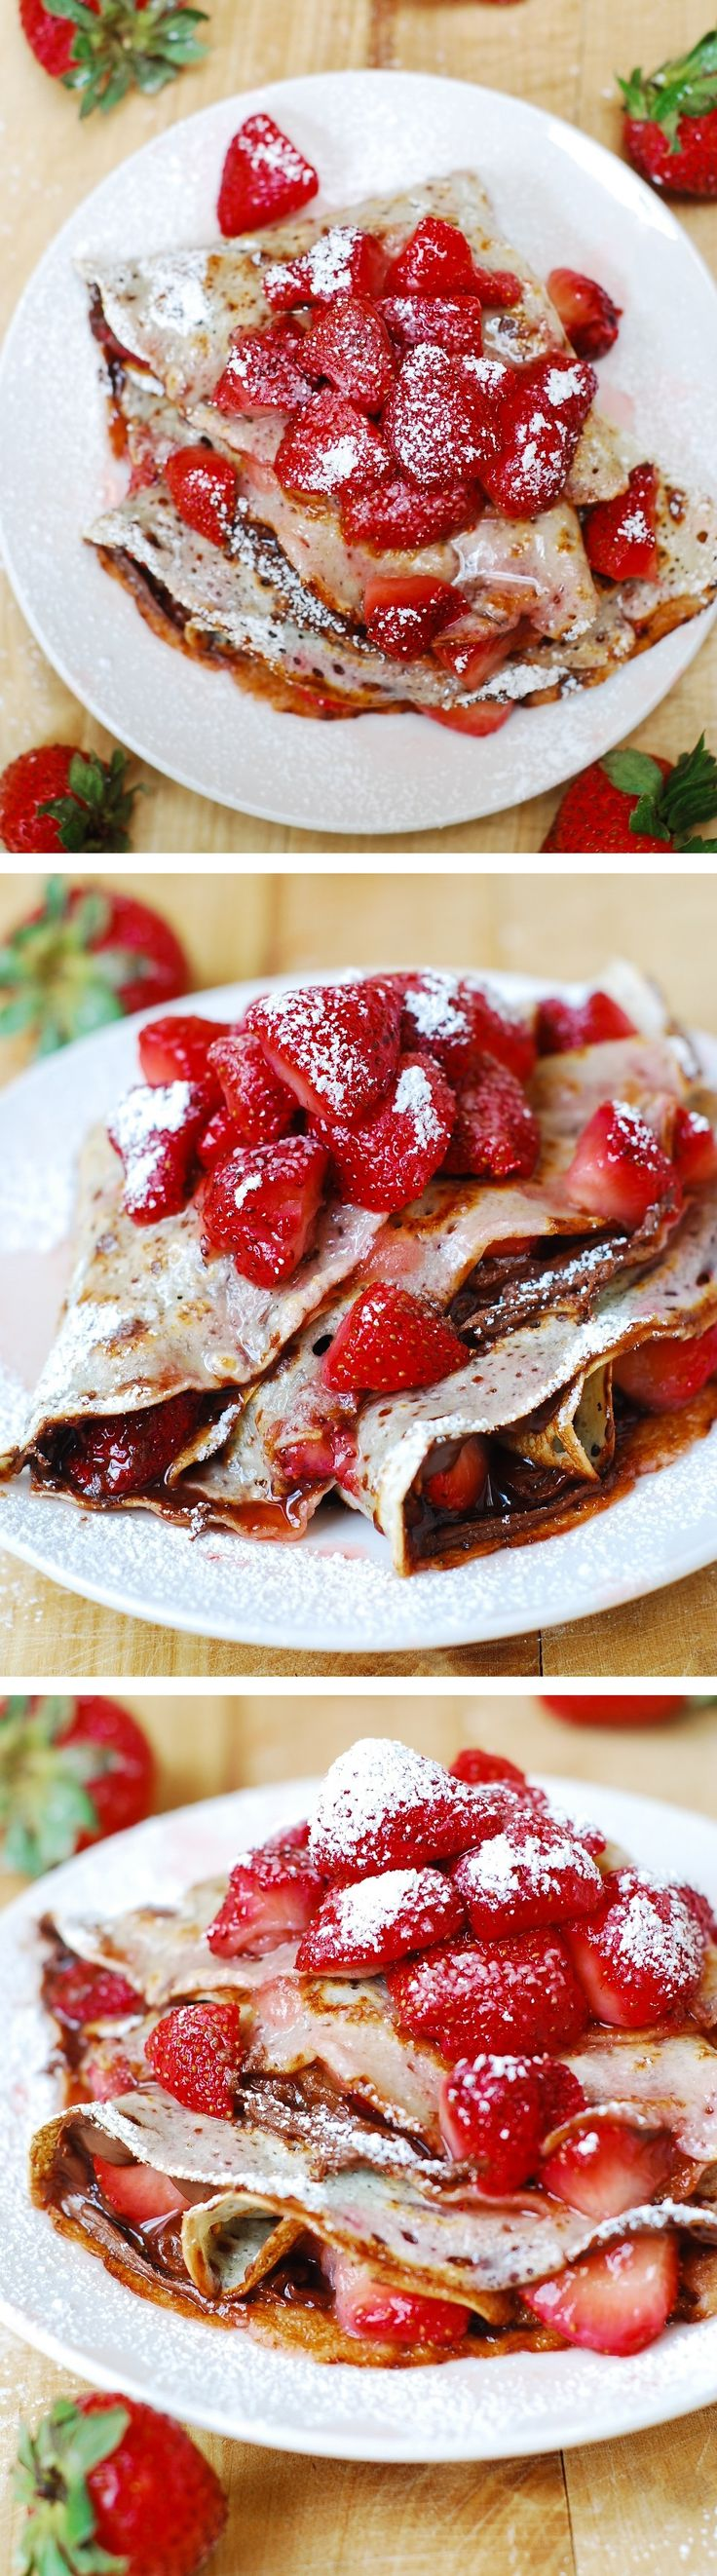 Strawberry & Nutella crepes sprinkled with powdered sugar! Great Summer time treat!